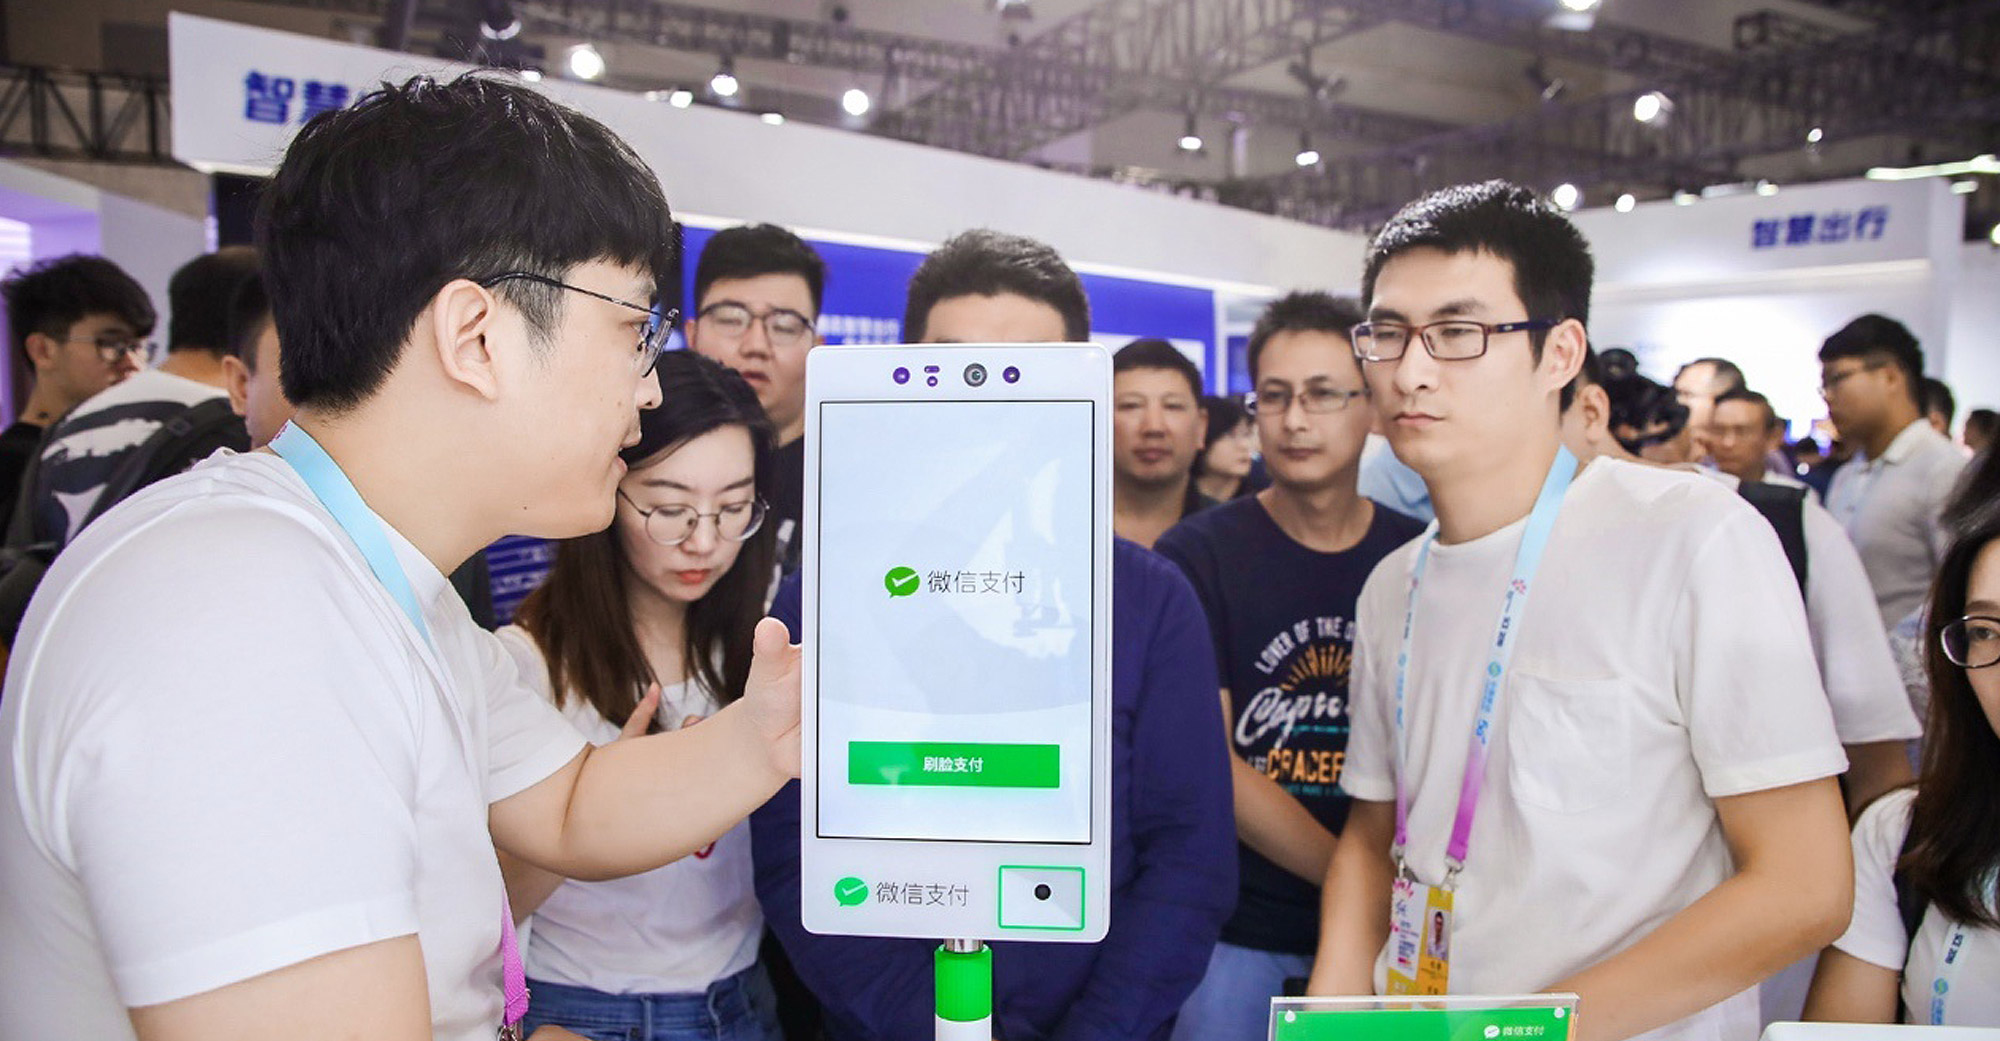 Tencent's WeChat Pushes for Mainstream Adoption of Facial Recognition Payment